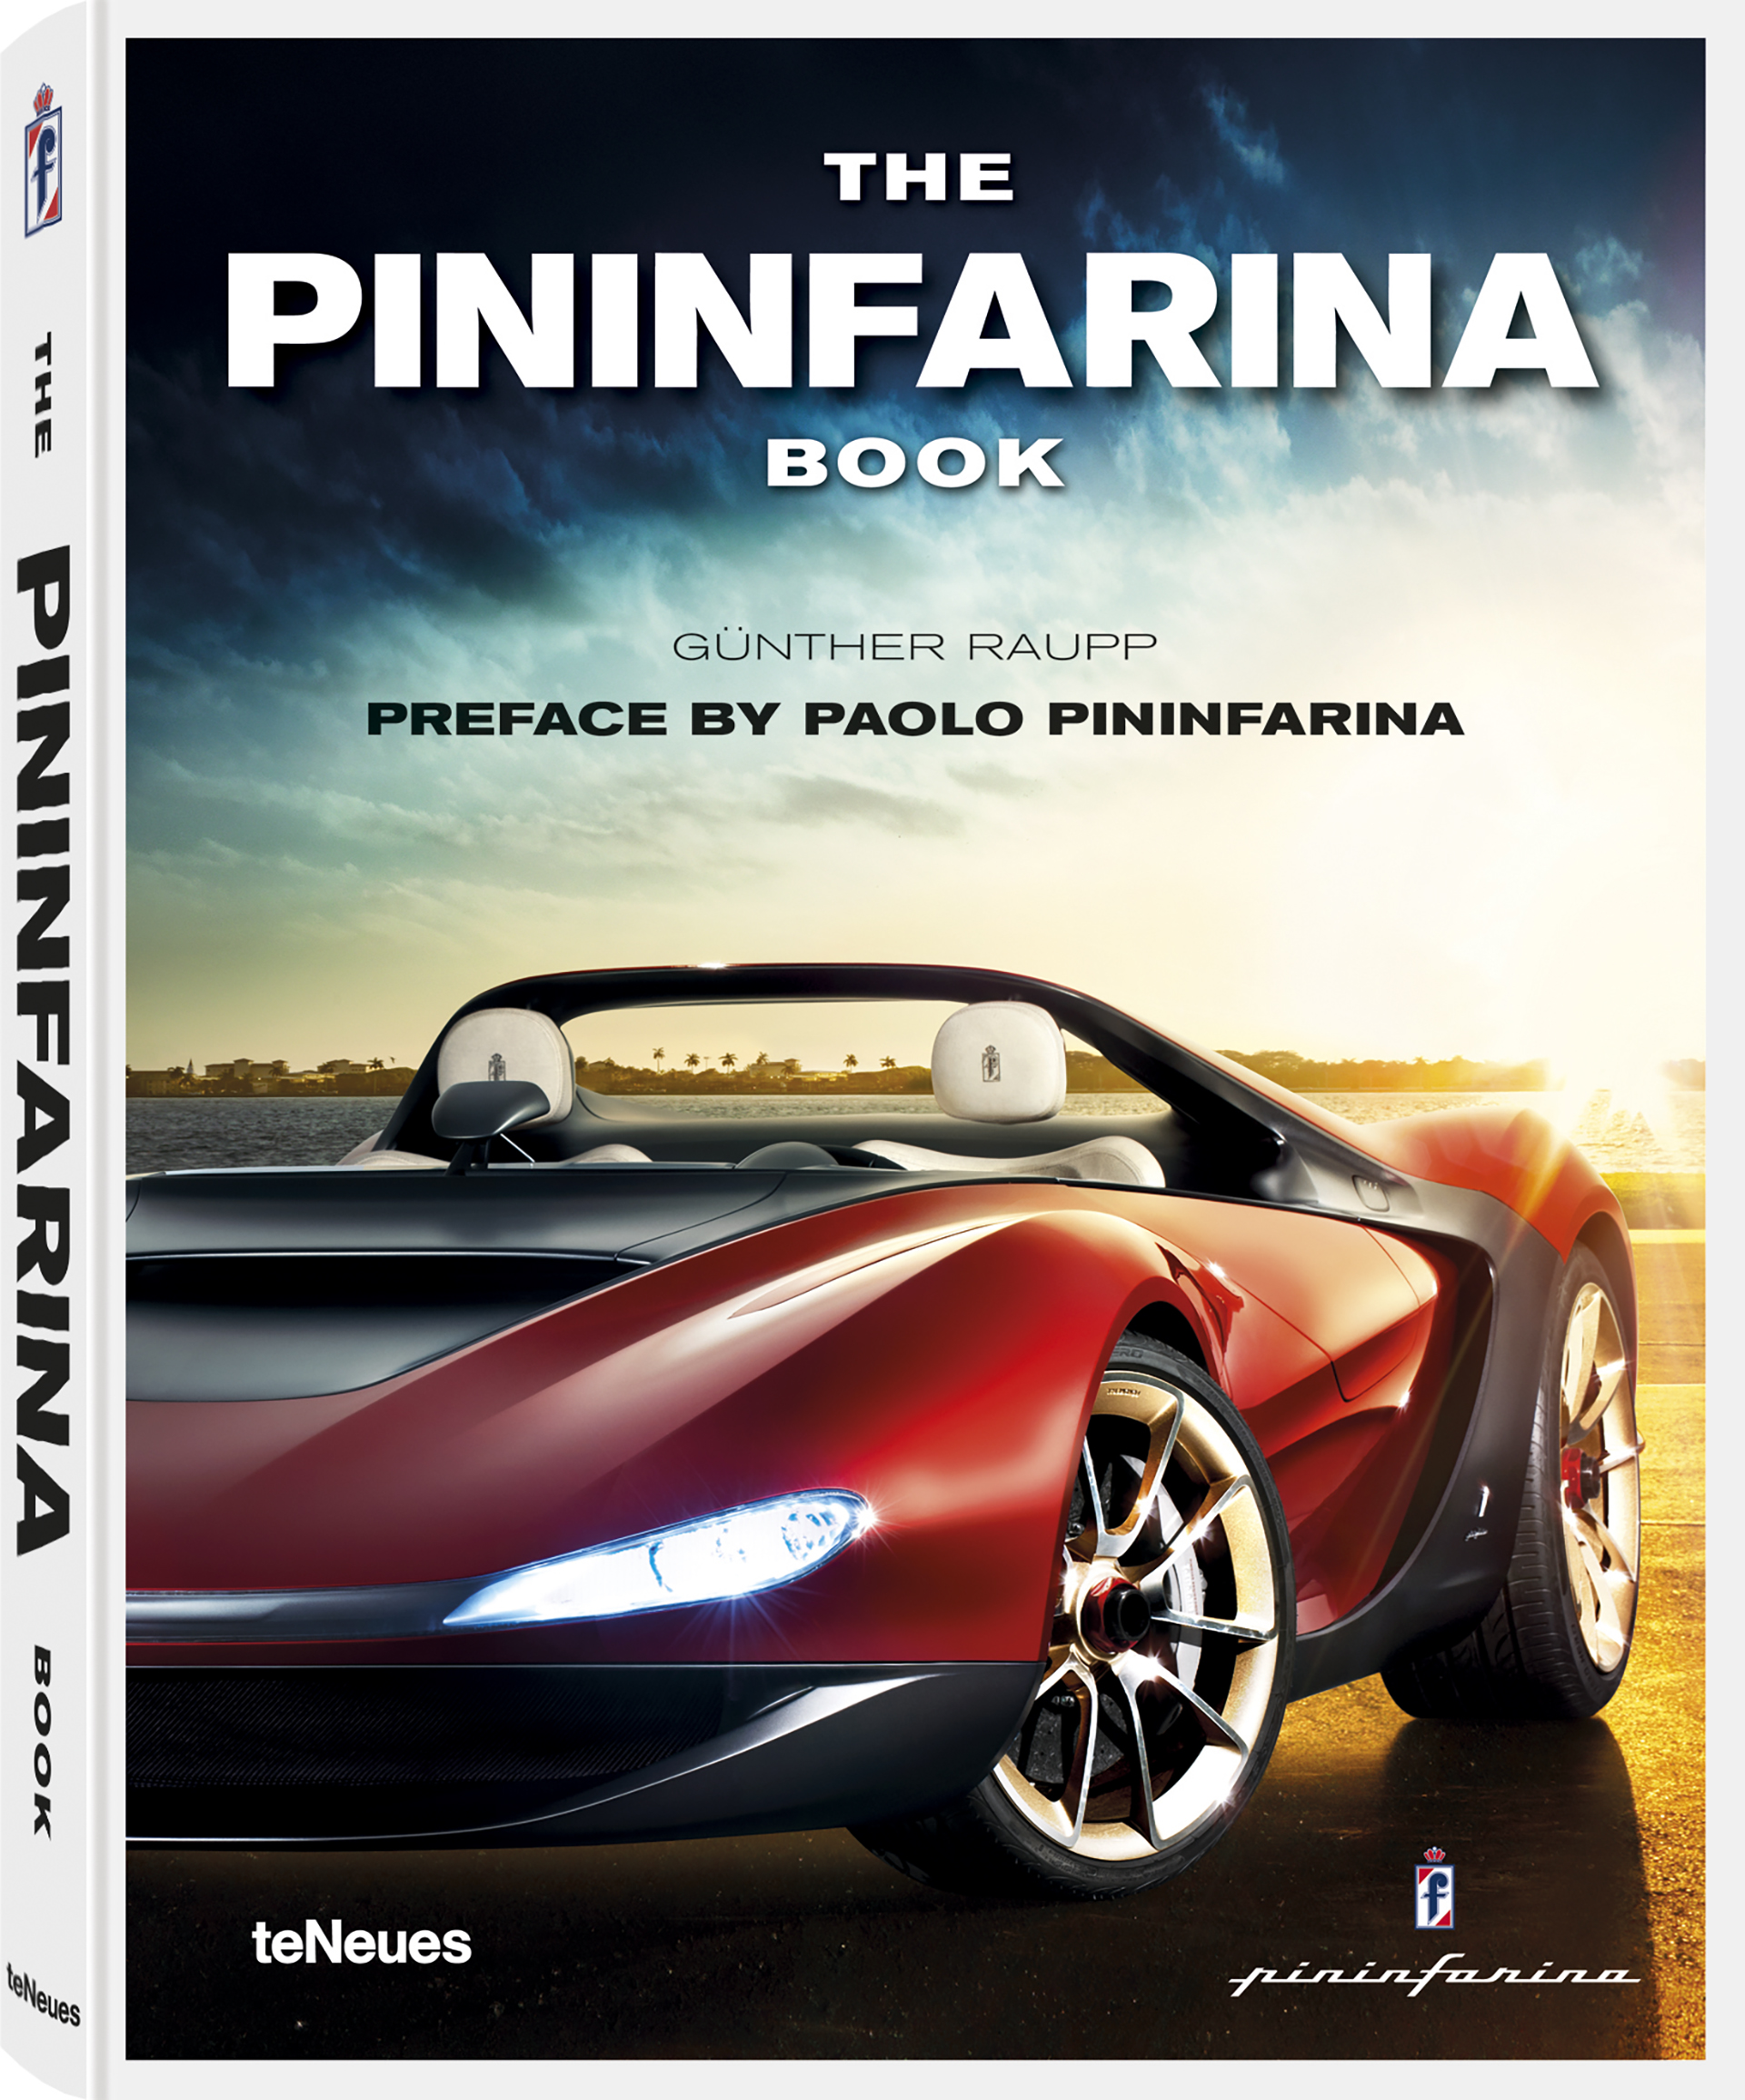 pininfarina - Corporate Publishing